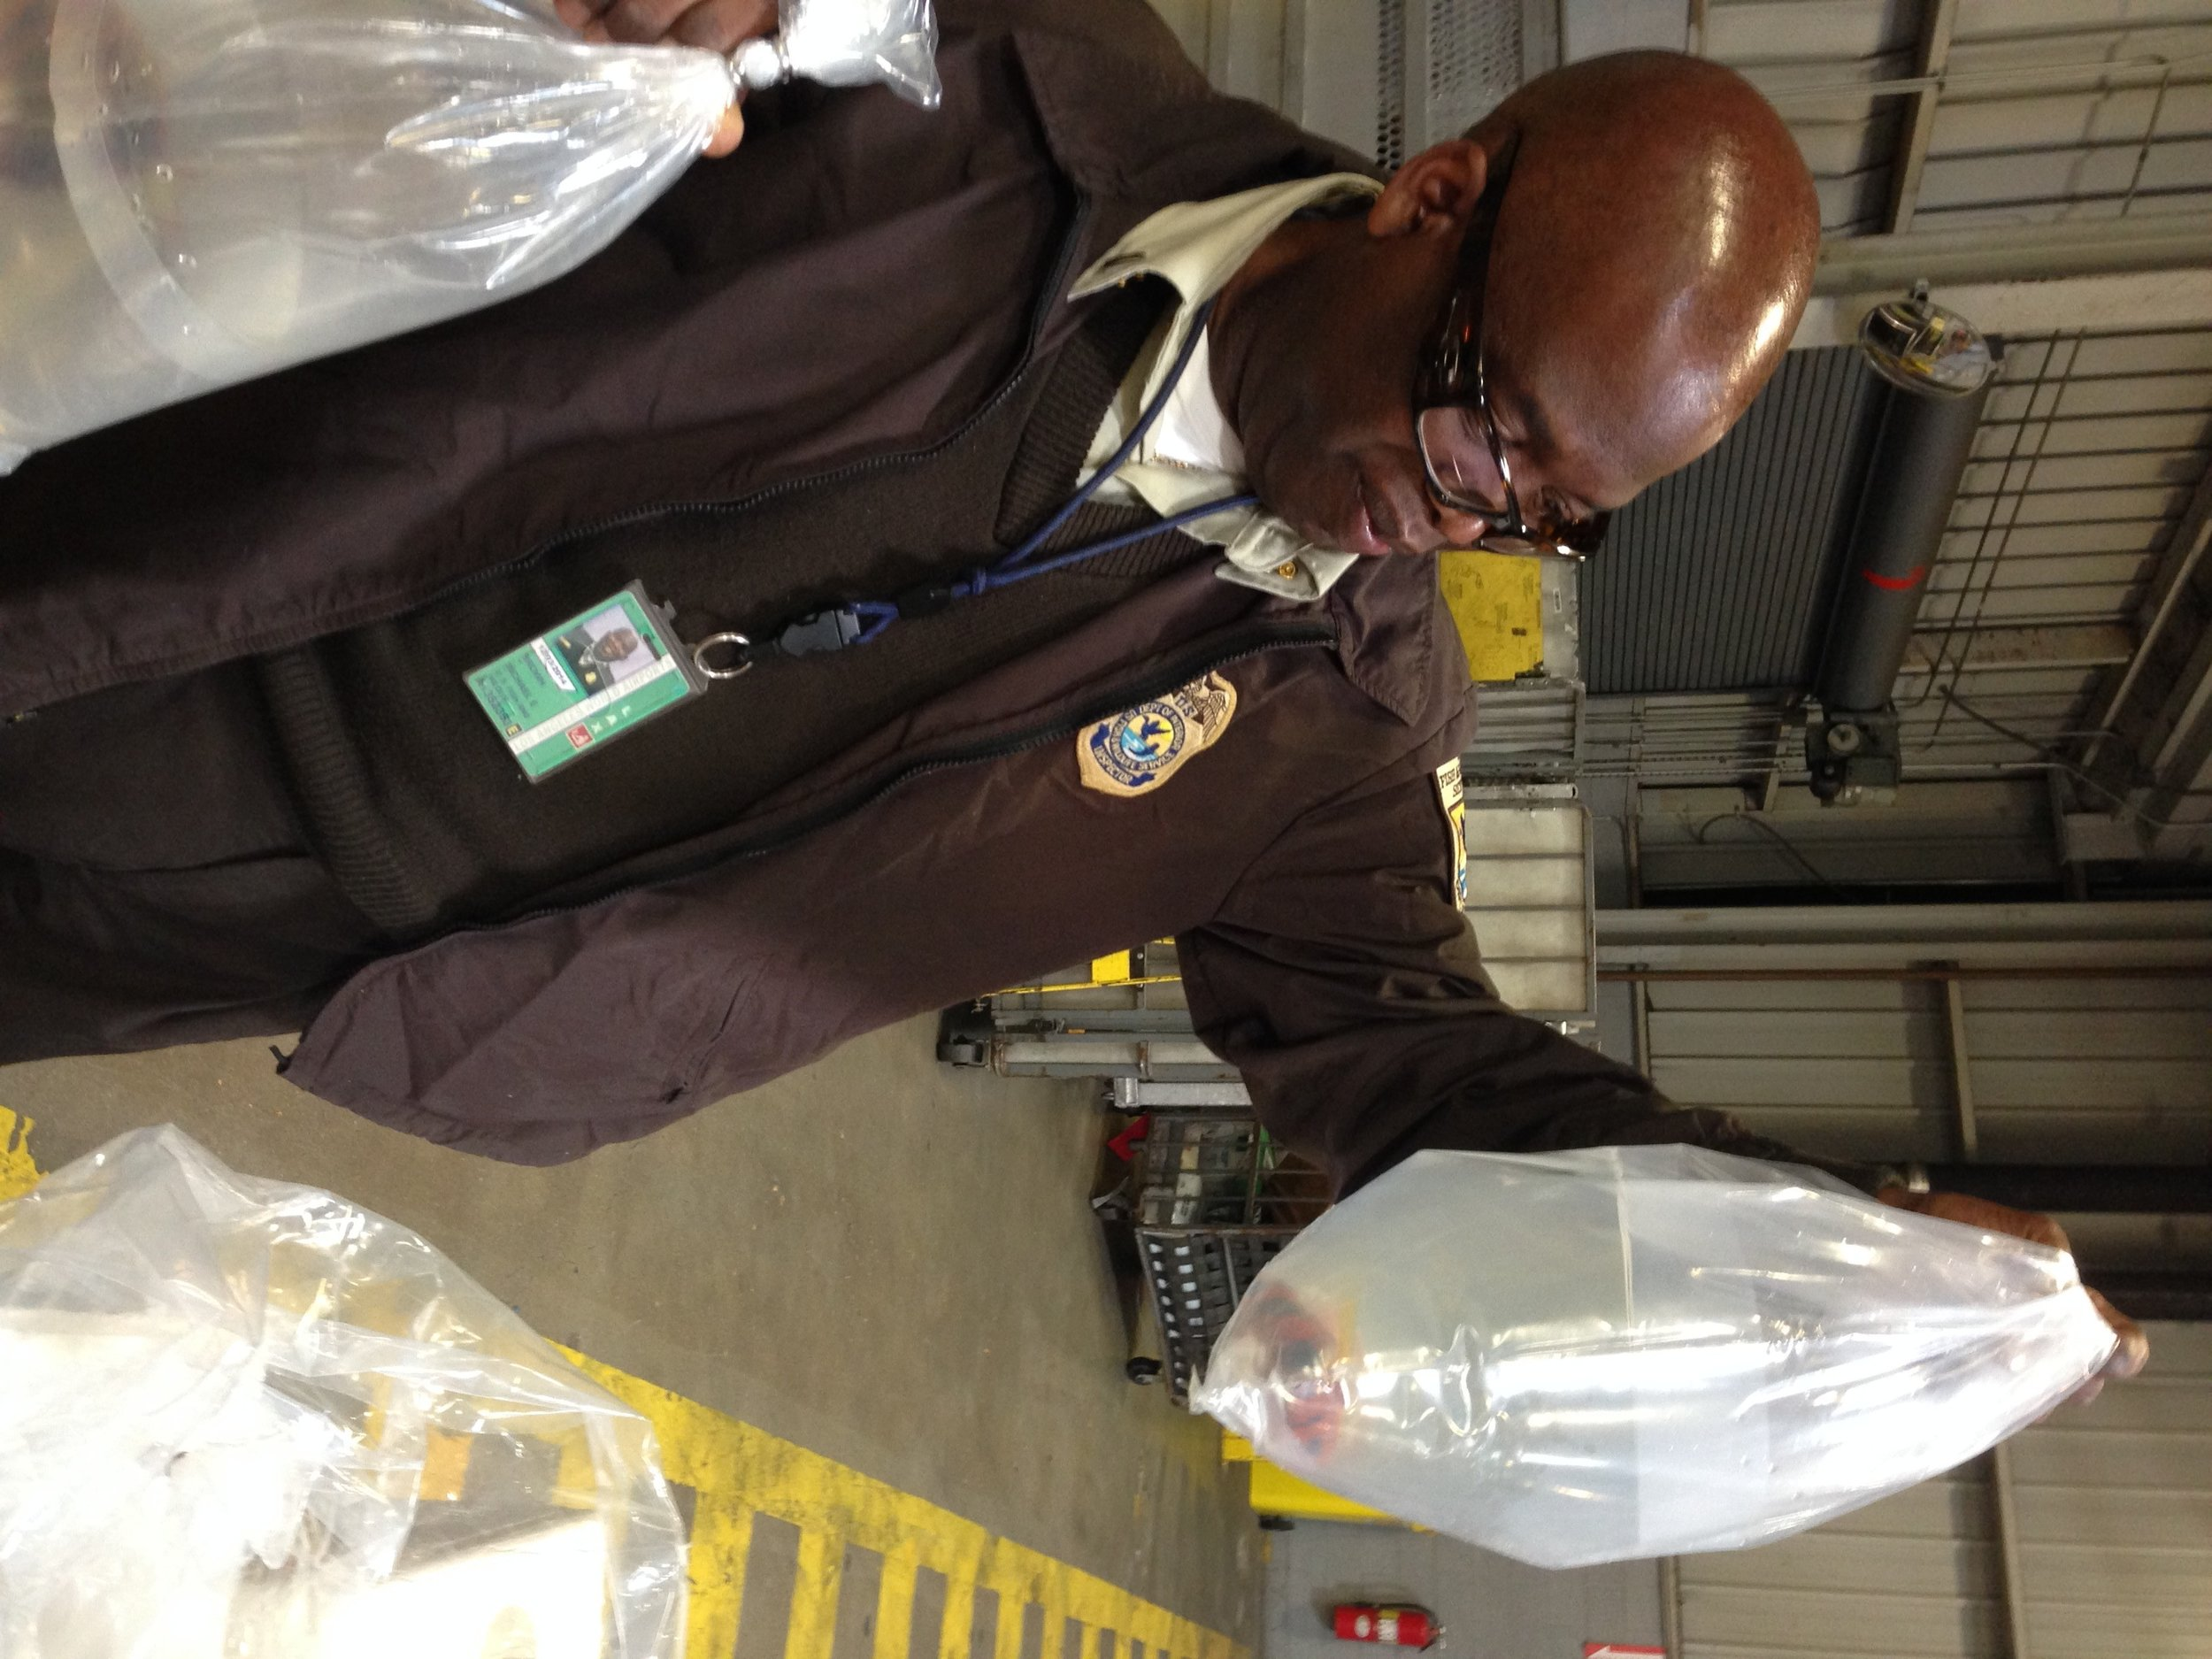 Michael Brown, USFW inspector, looking at a legal shipment of fish that came through LAX. These fish came from Australia, presumably for a gap year in the States.